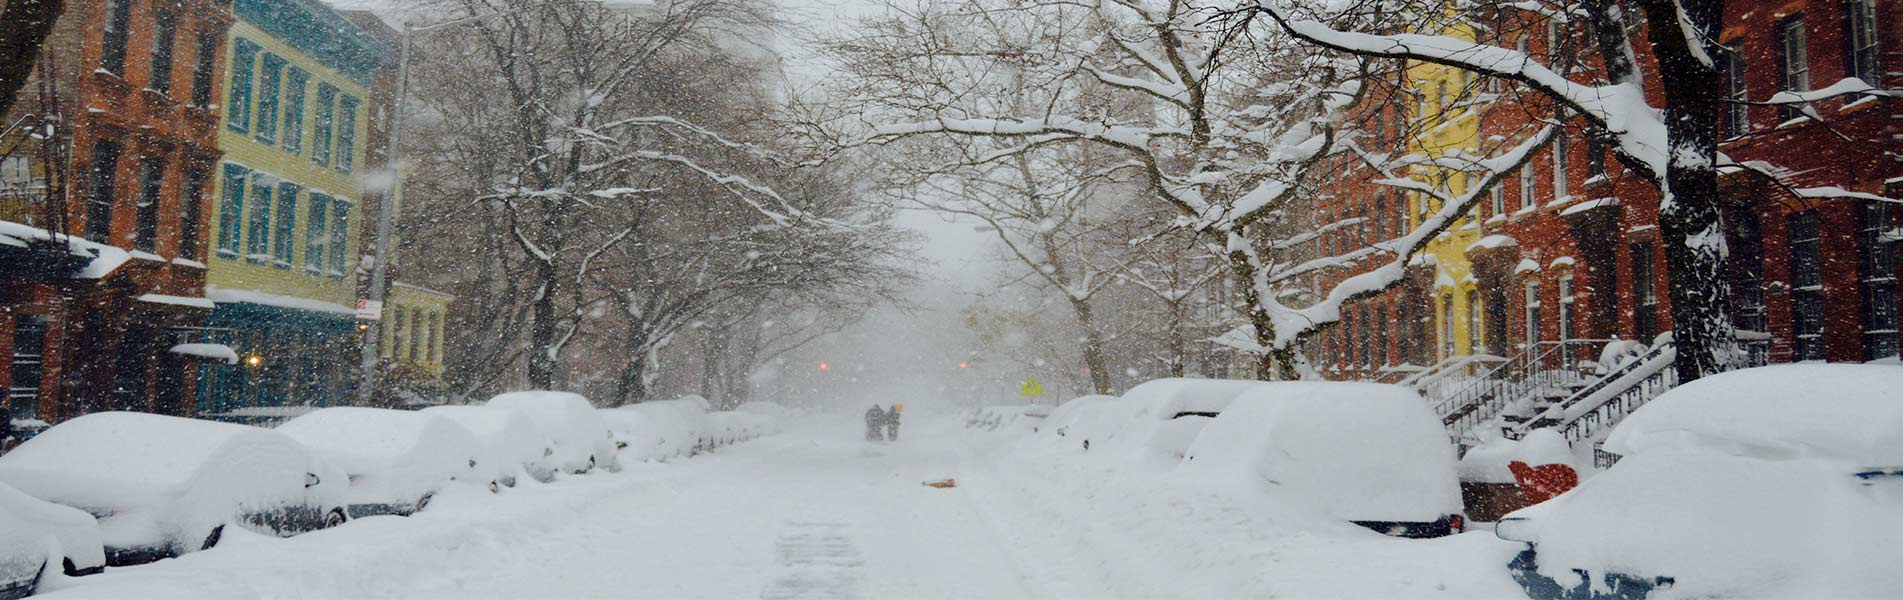 Snow Removal Services by B&C Pavers and Landscaping Inc.